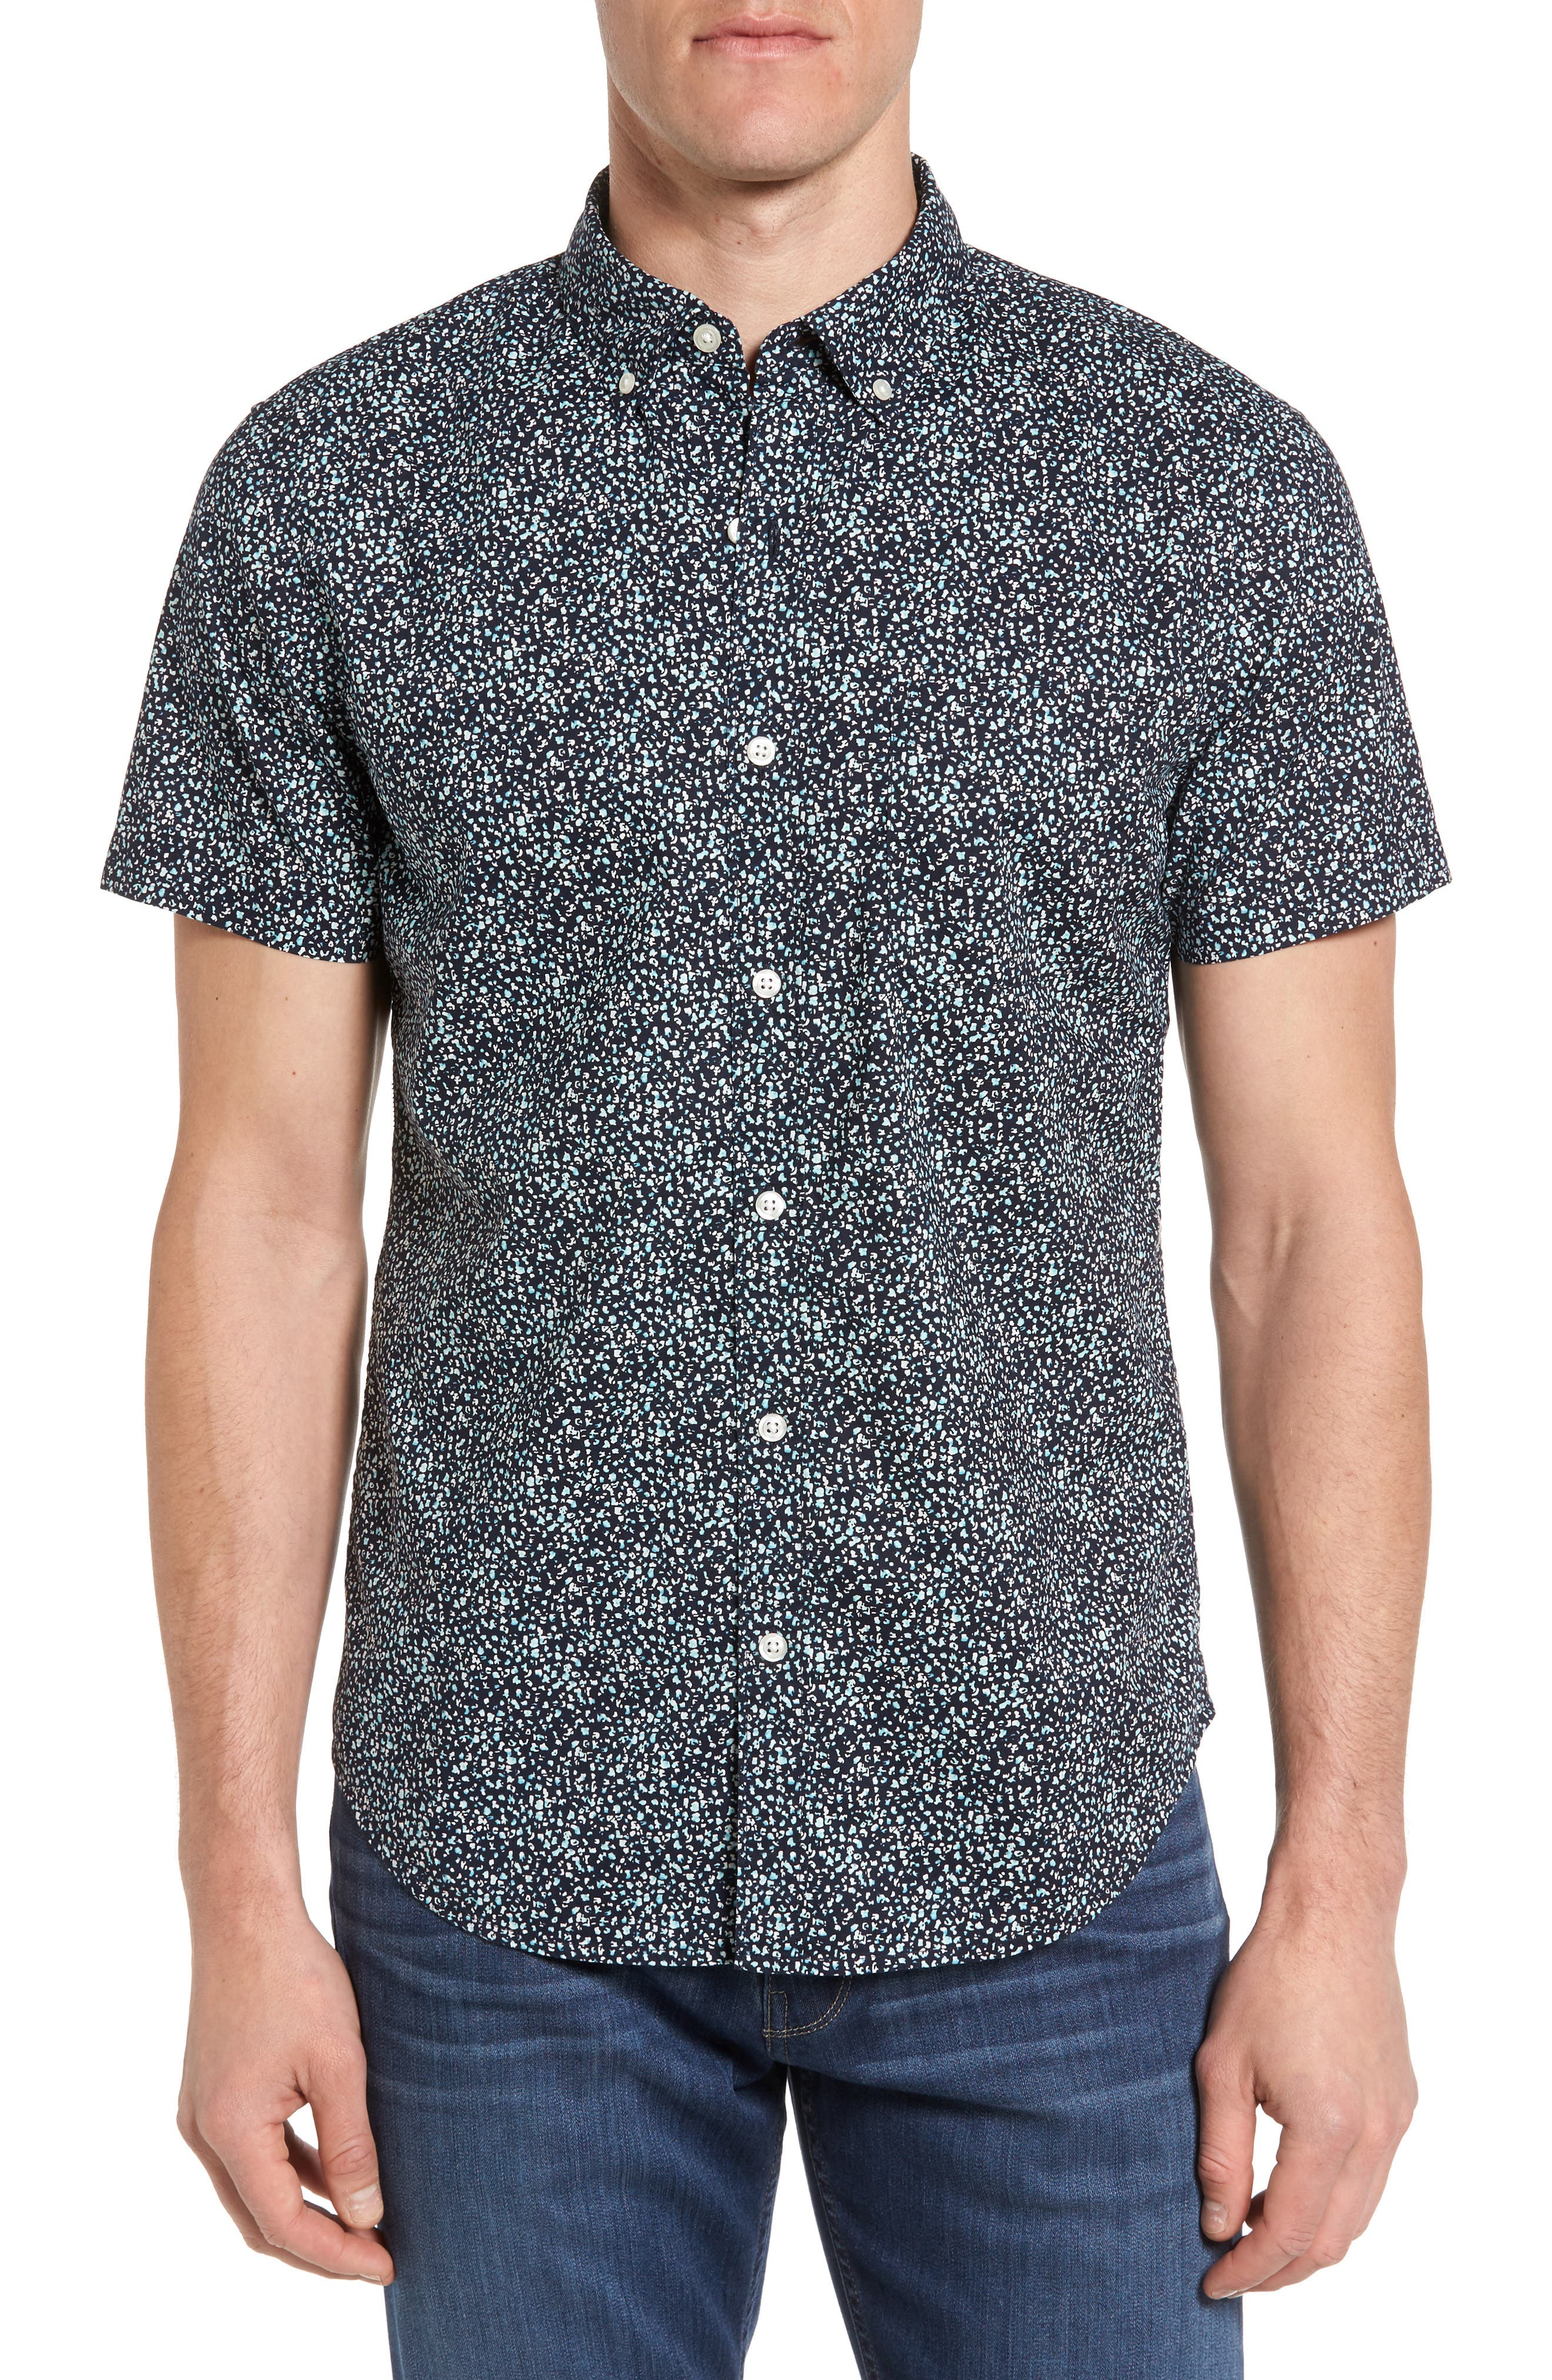 Bonobos Slim Fit Short Sleeve Sport Shirt